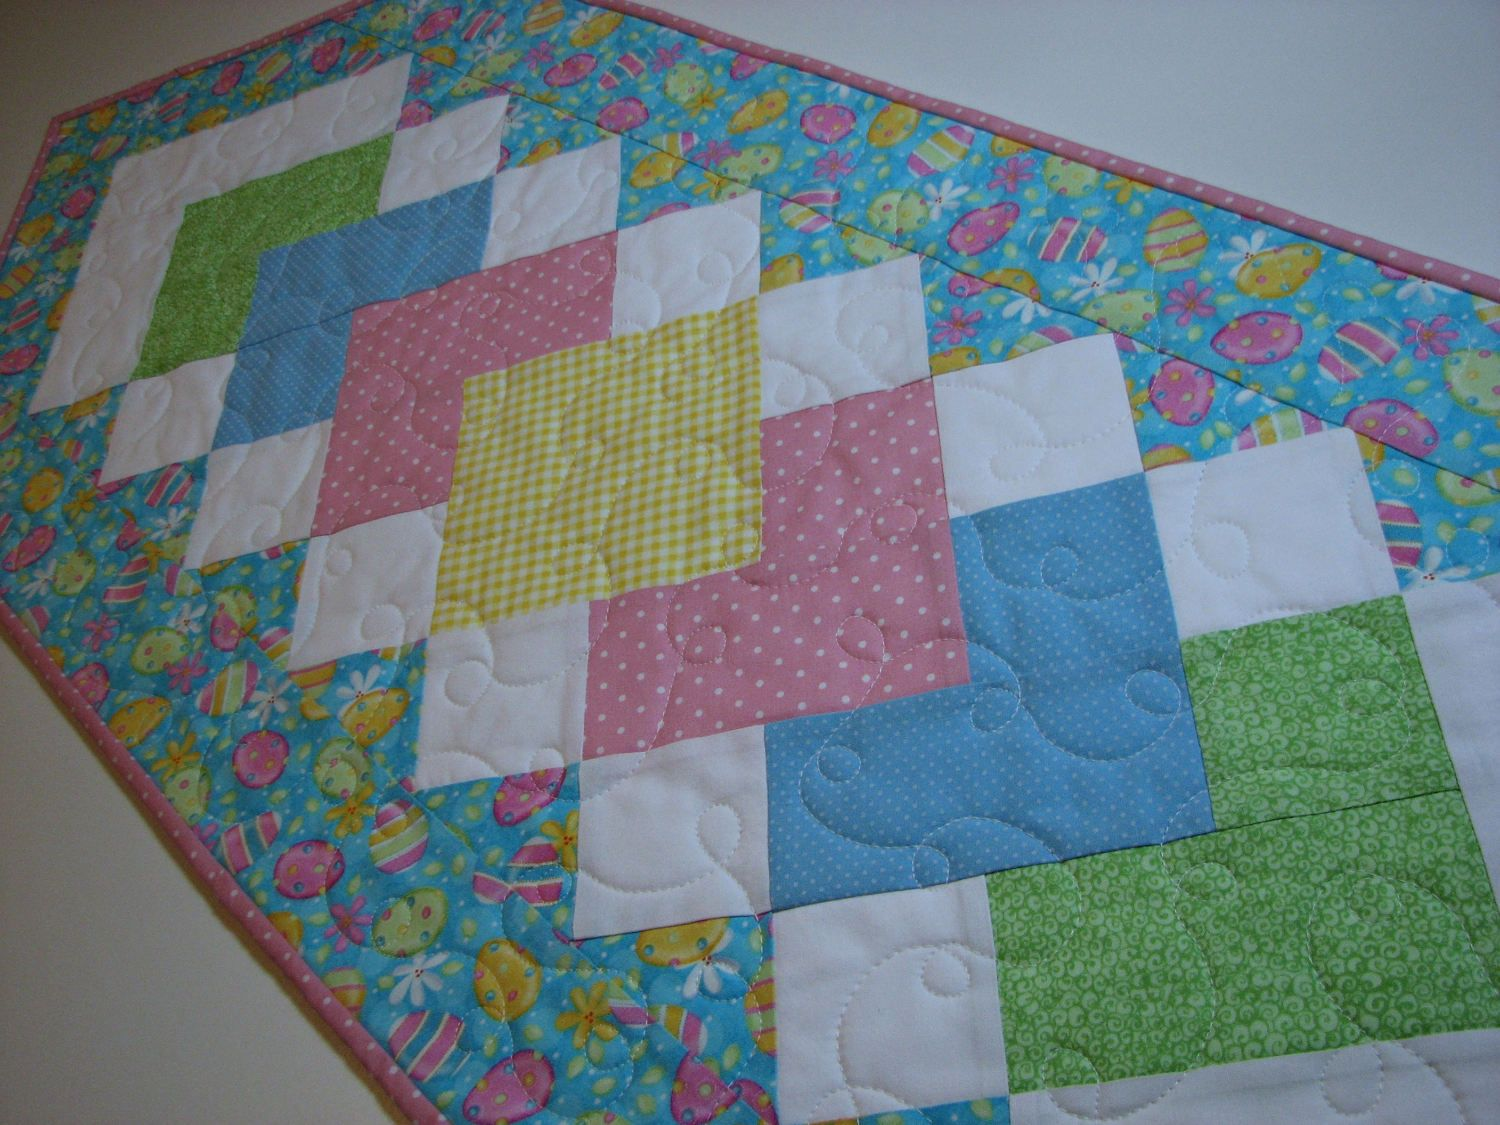 inside runner star quilted runners quilts x of july patriotic table beach quilt size ormond easy pattern